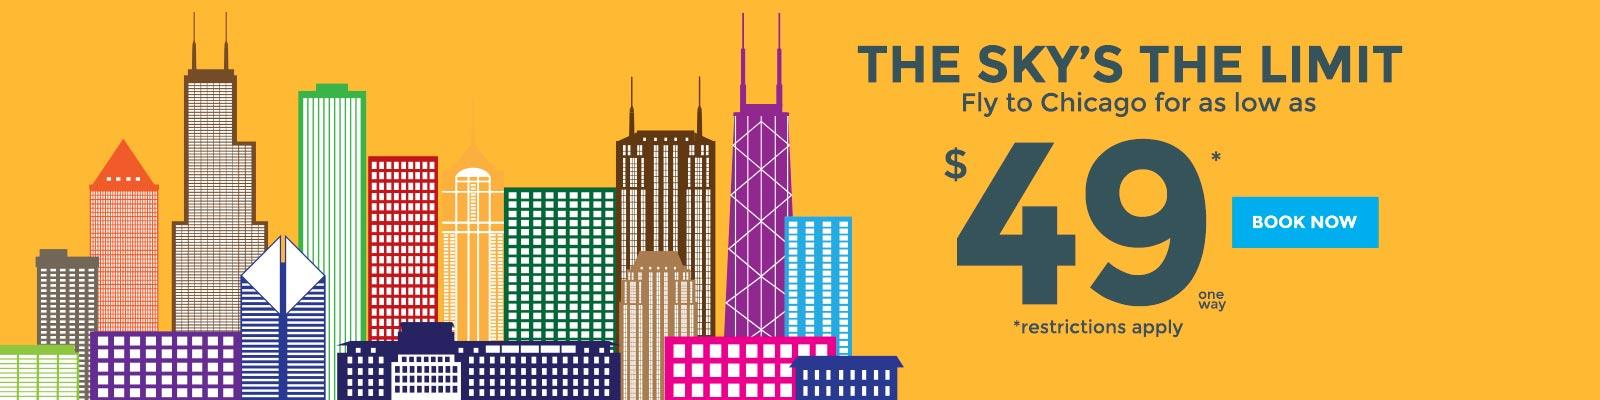 The sky's the limit! Fly to Chicago for as low as $49* one way. Restrictions apply. Book now!